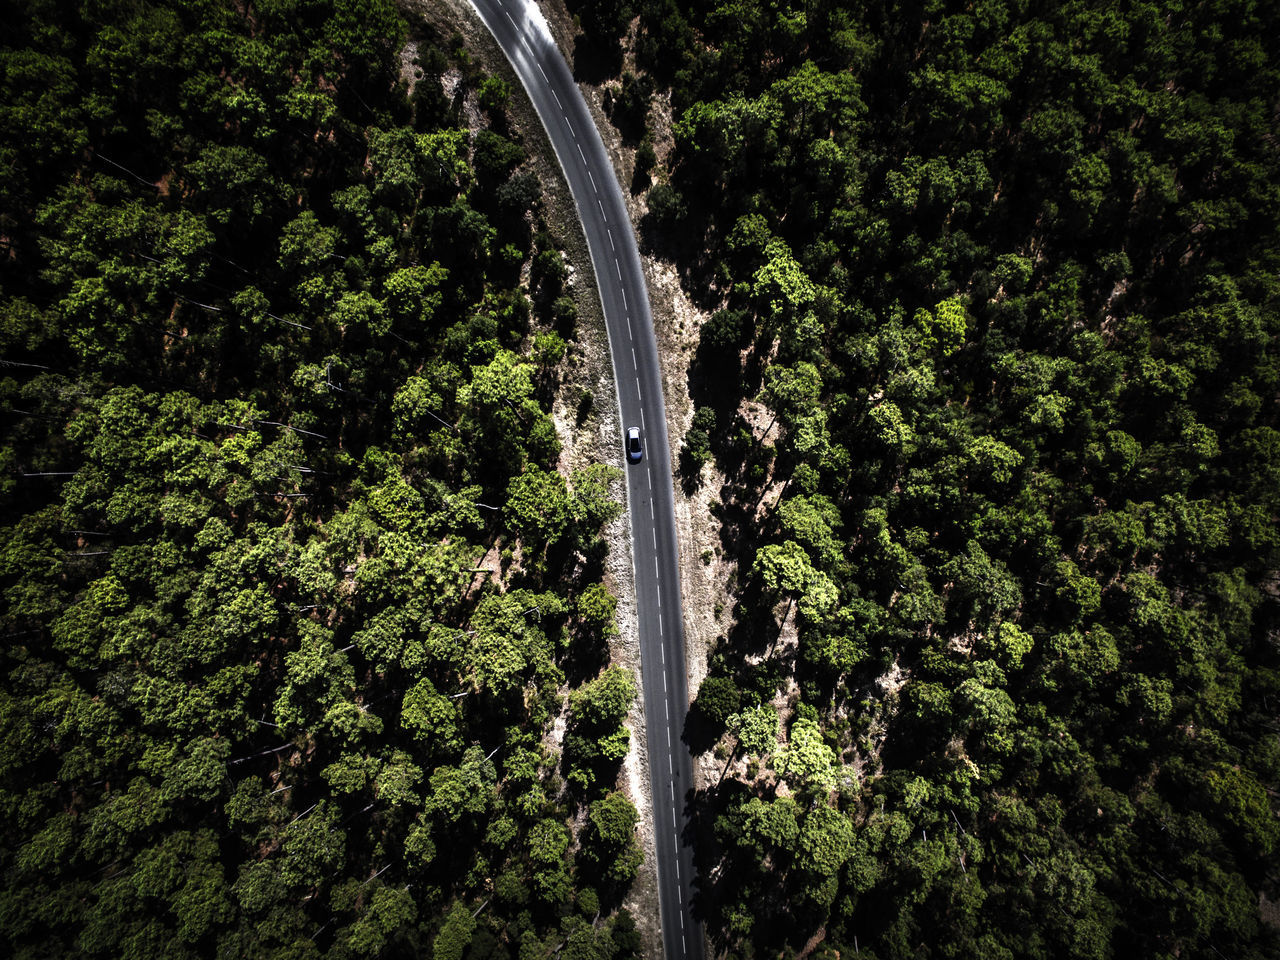 Aerial Photography Aerial Shot Aerial View Beauty In Nature Car Day Driving Flying High Green Color Lush Foliage Nature No People Outdoors Pine Tree Plant Road Roadtrip Scenics Tree View From Above